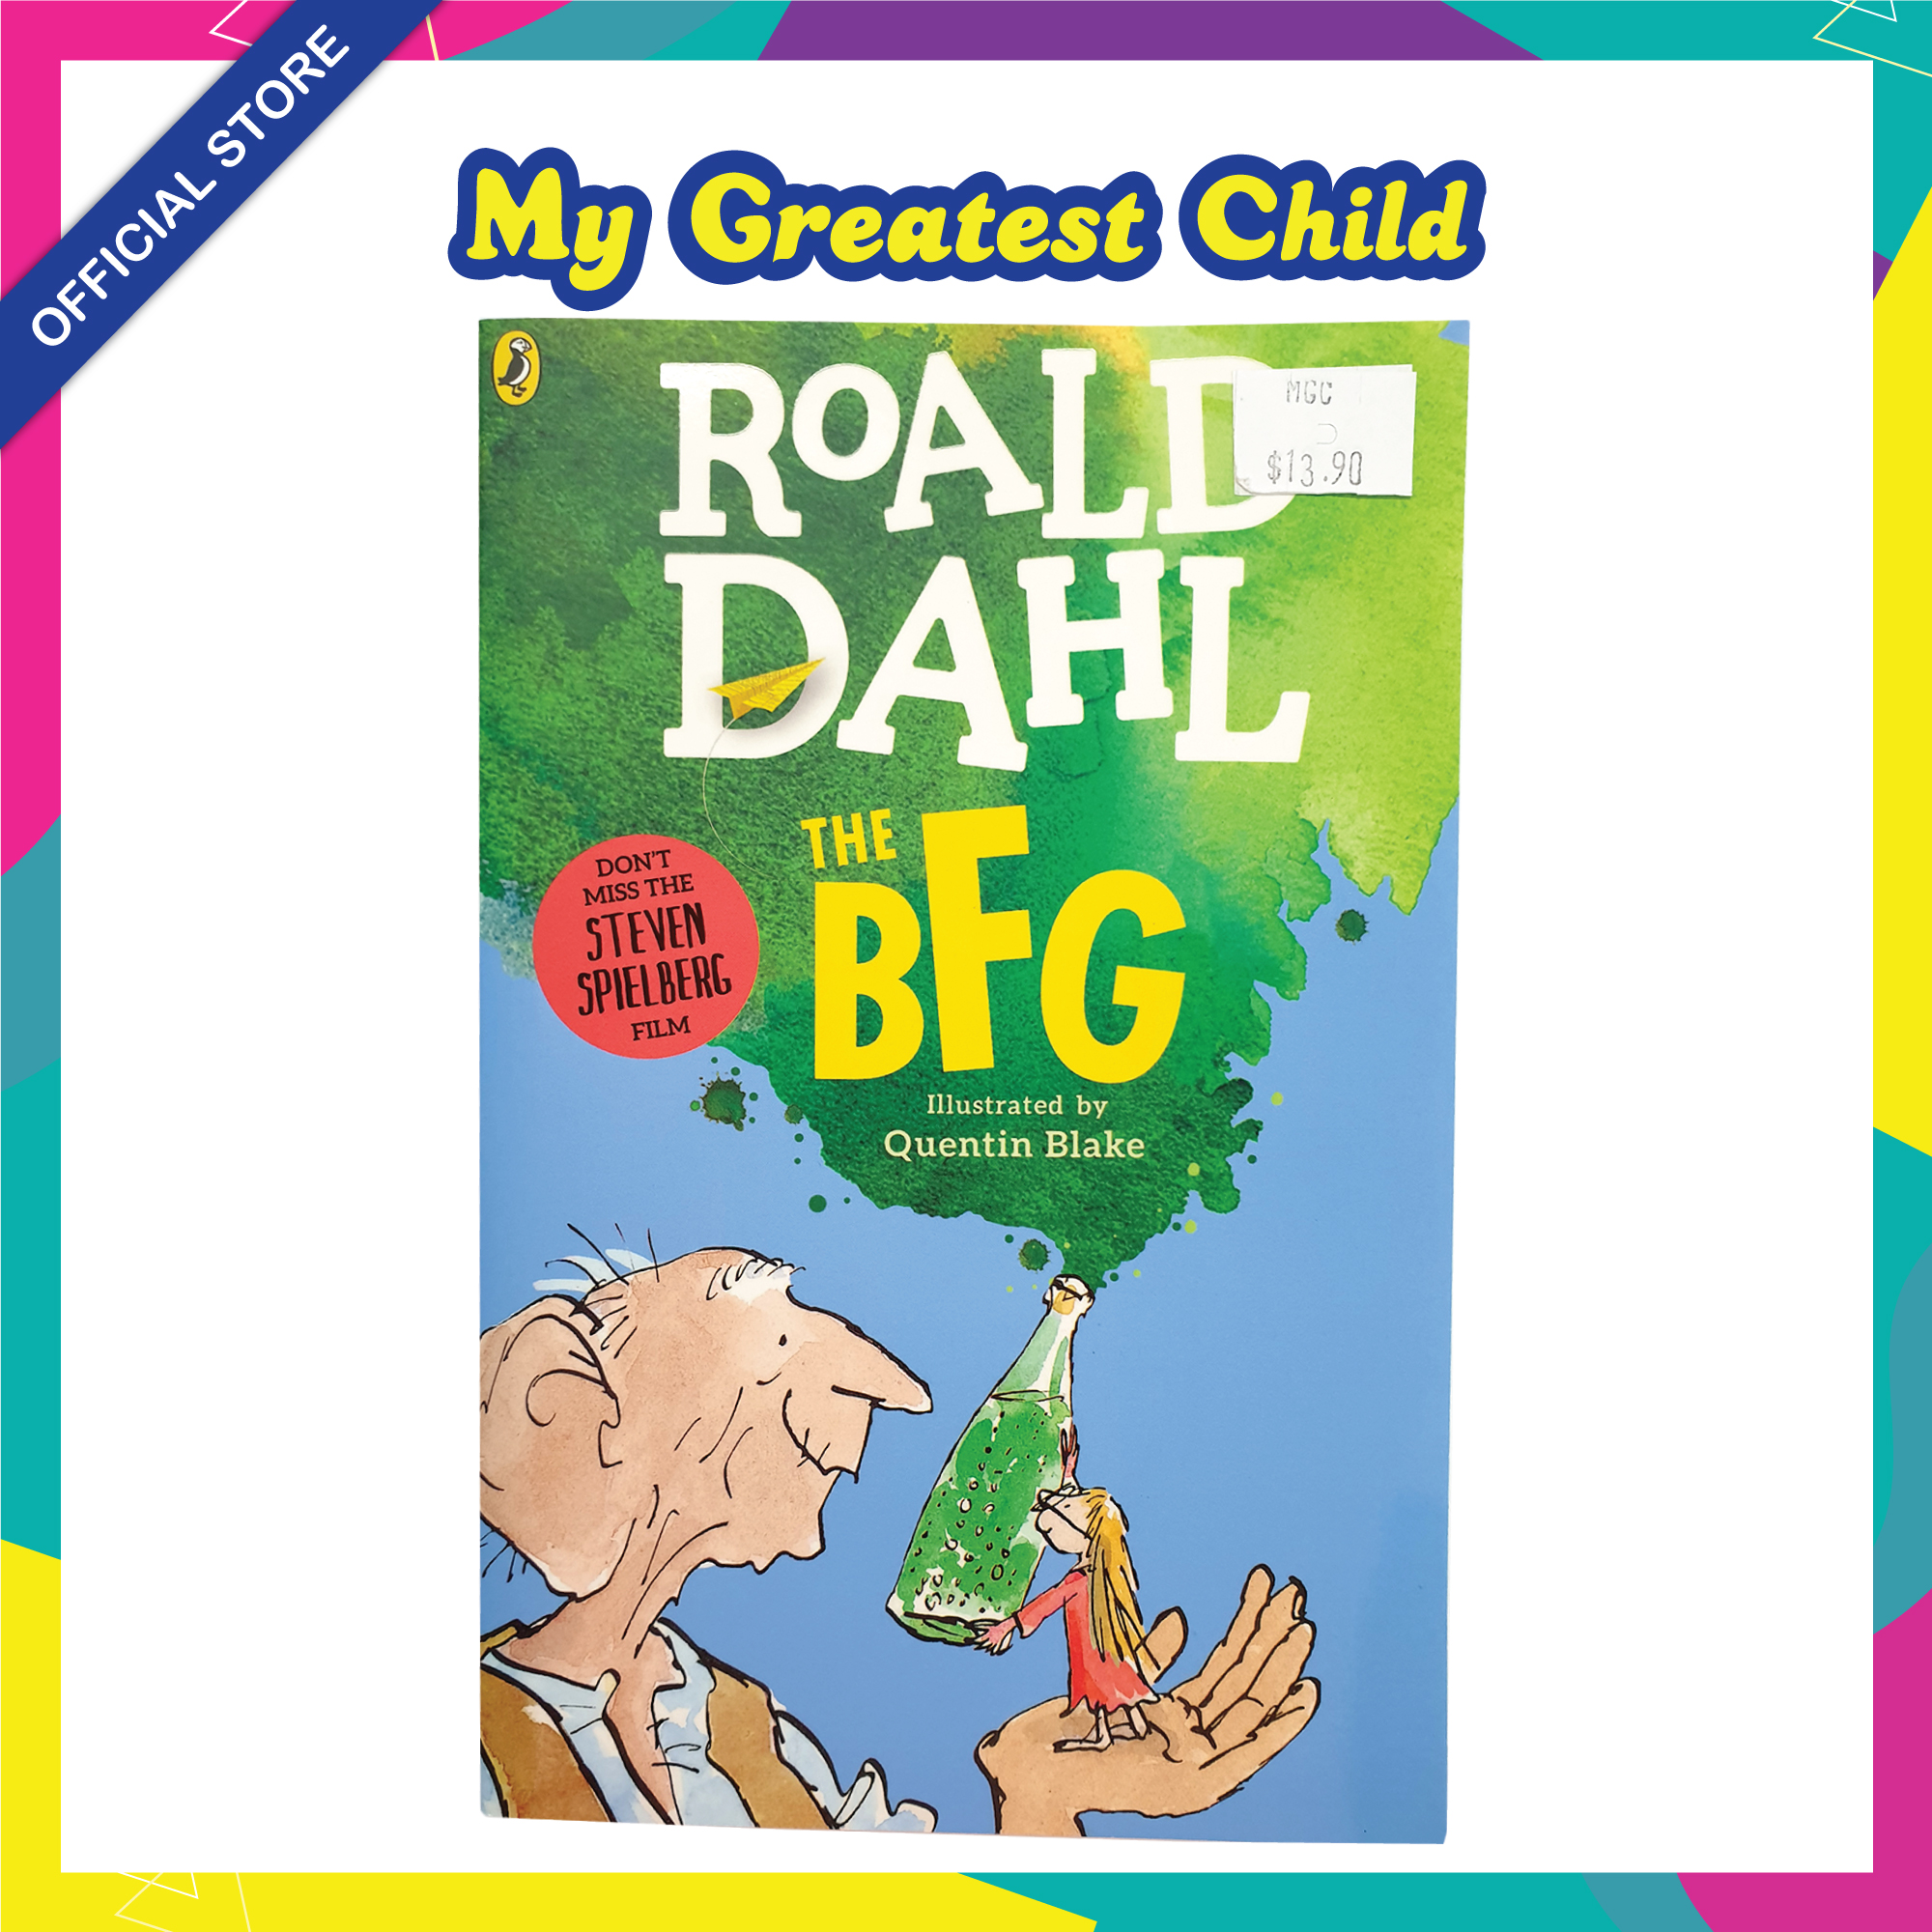 The BFG - Roald Dahl English Paperback Childrens Book (For Ages 7+)